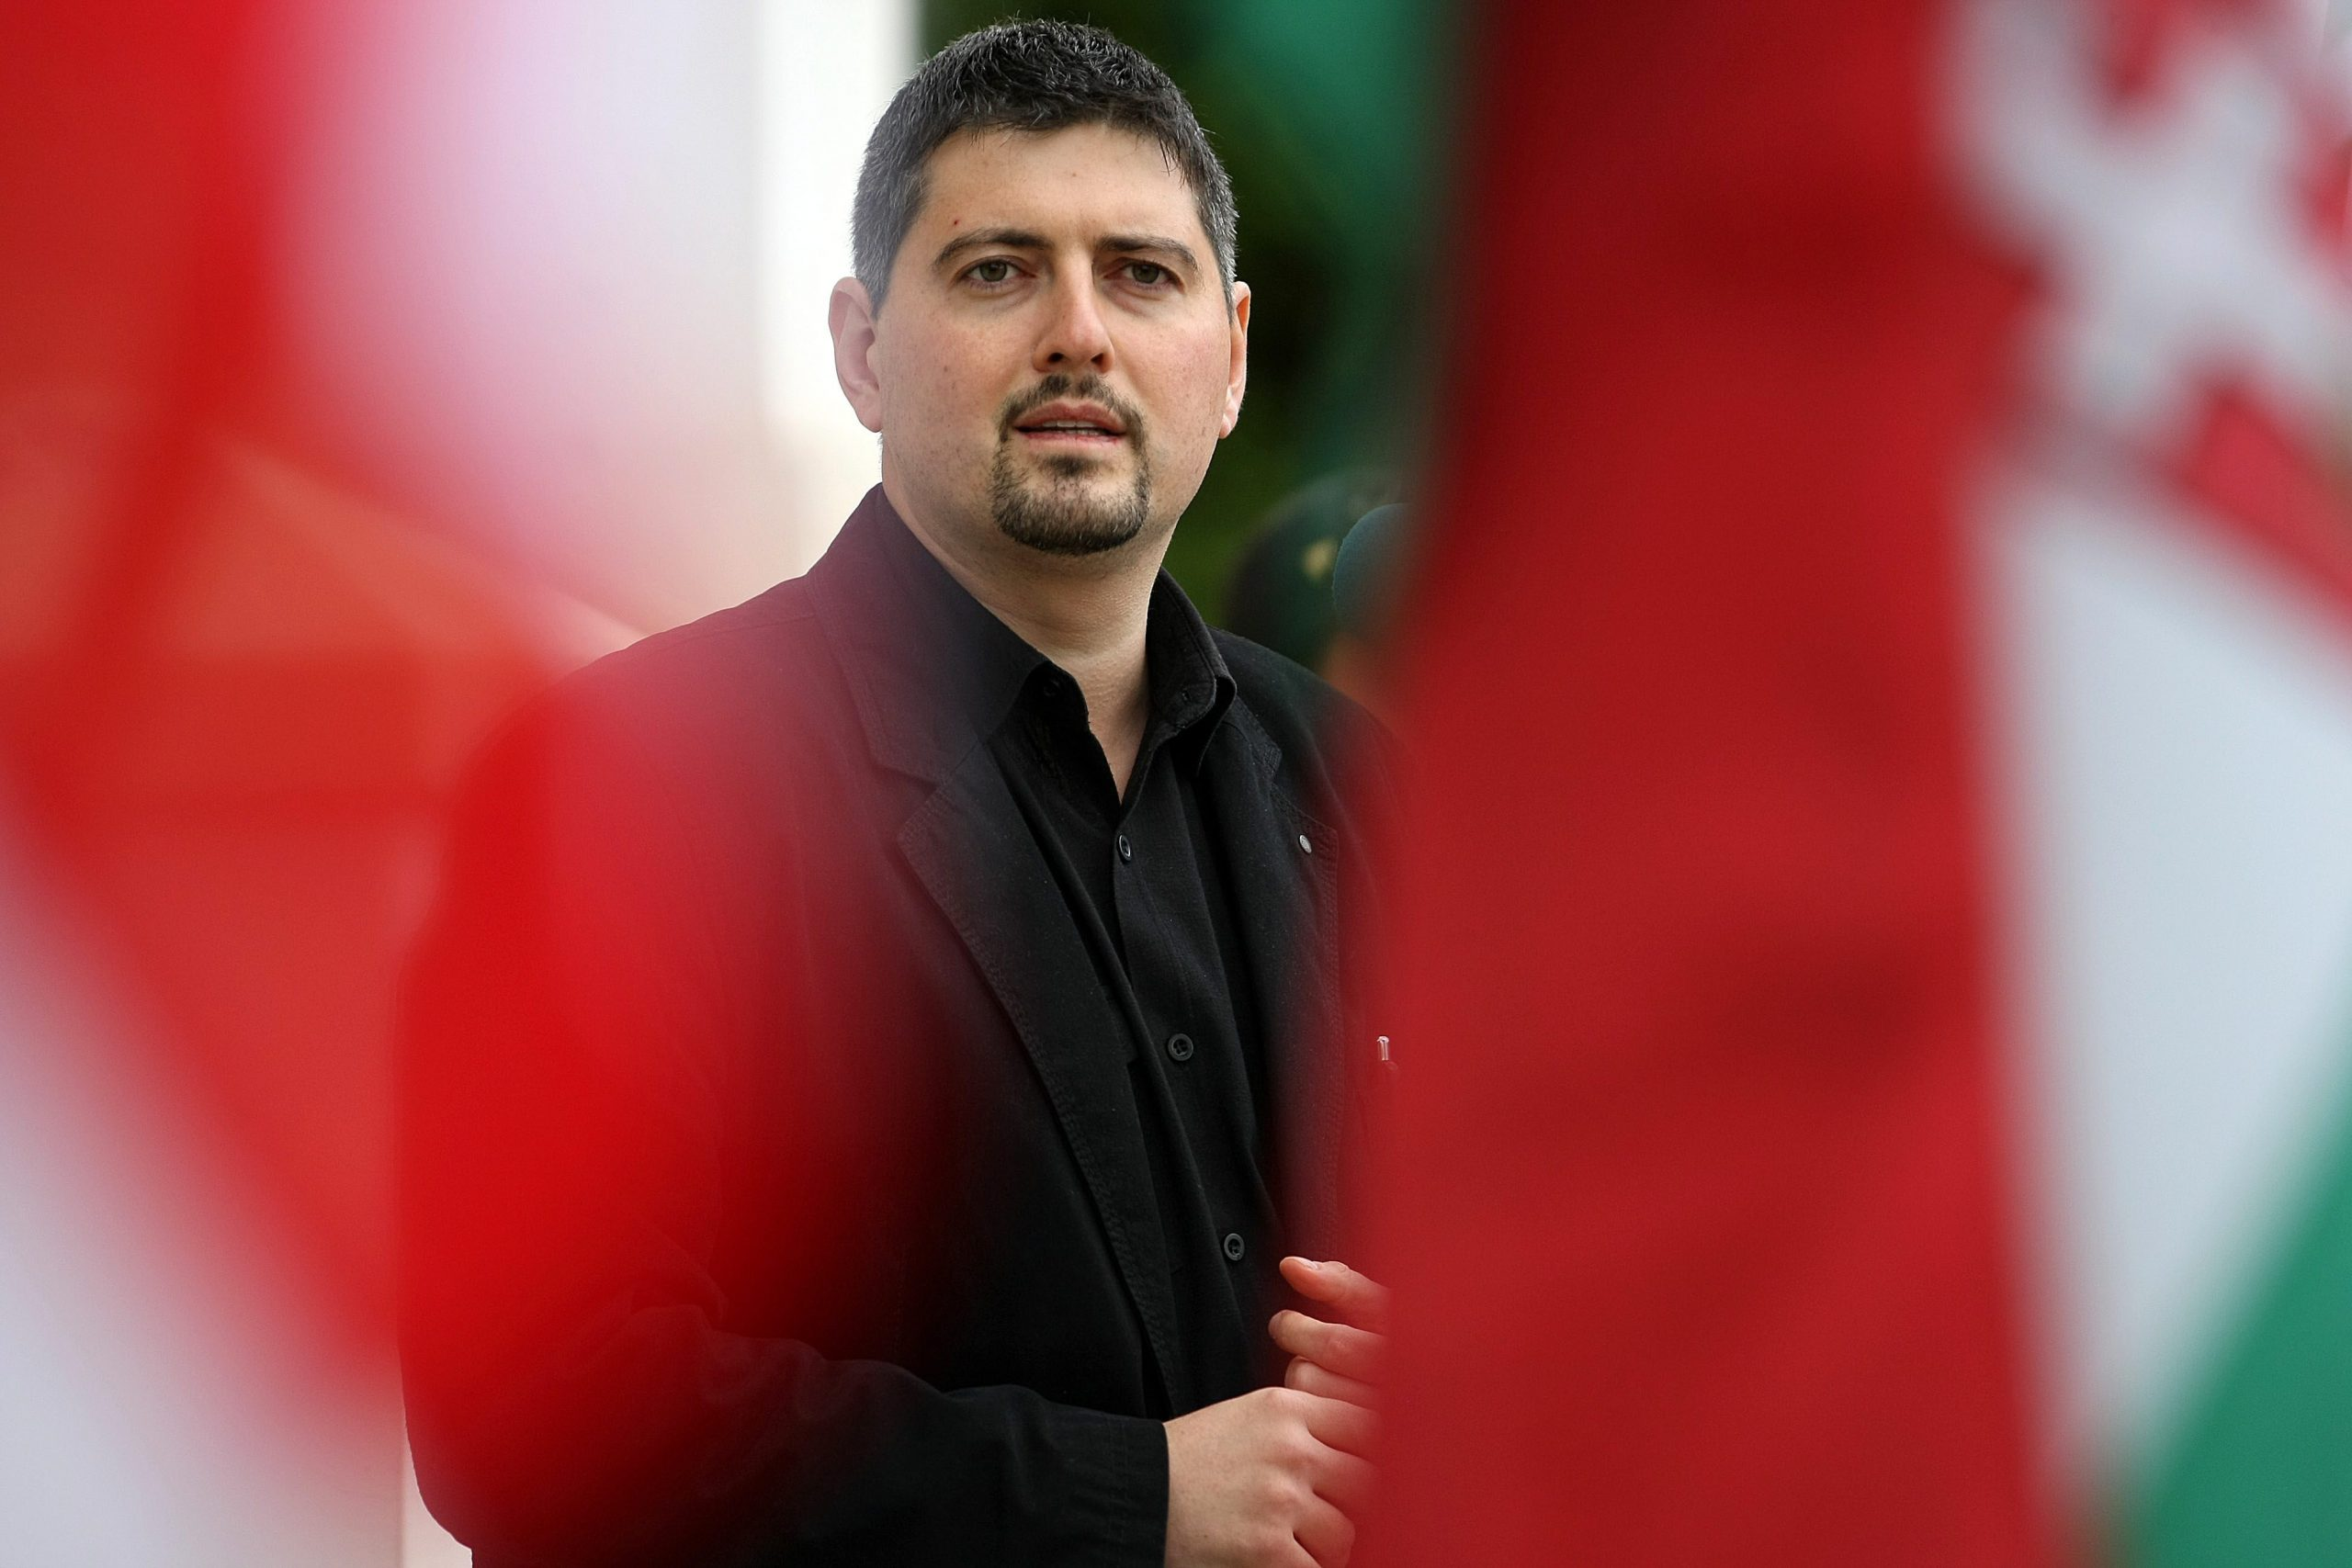 Former Jobbik MEP Csanád Szegedi Charged with Fraud